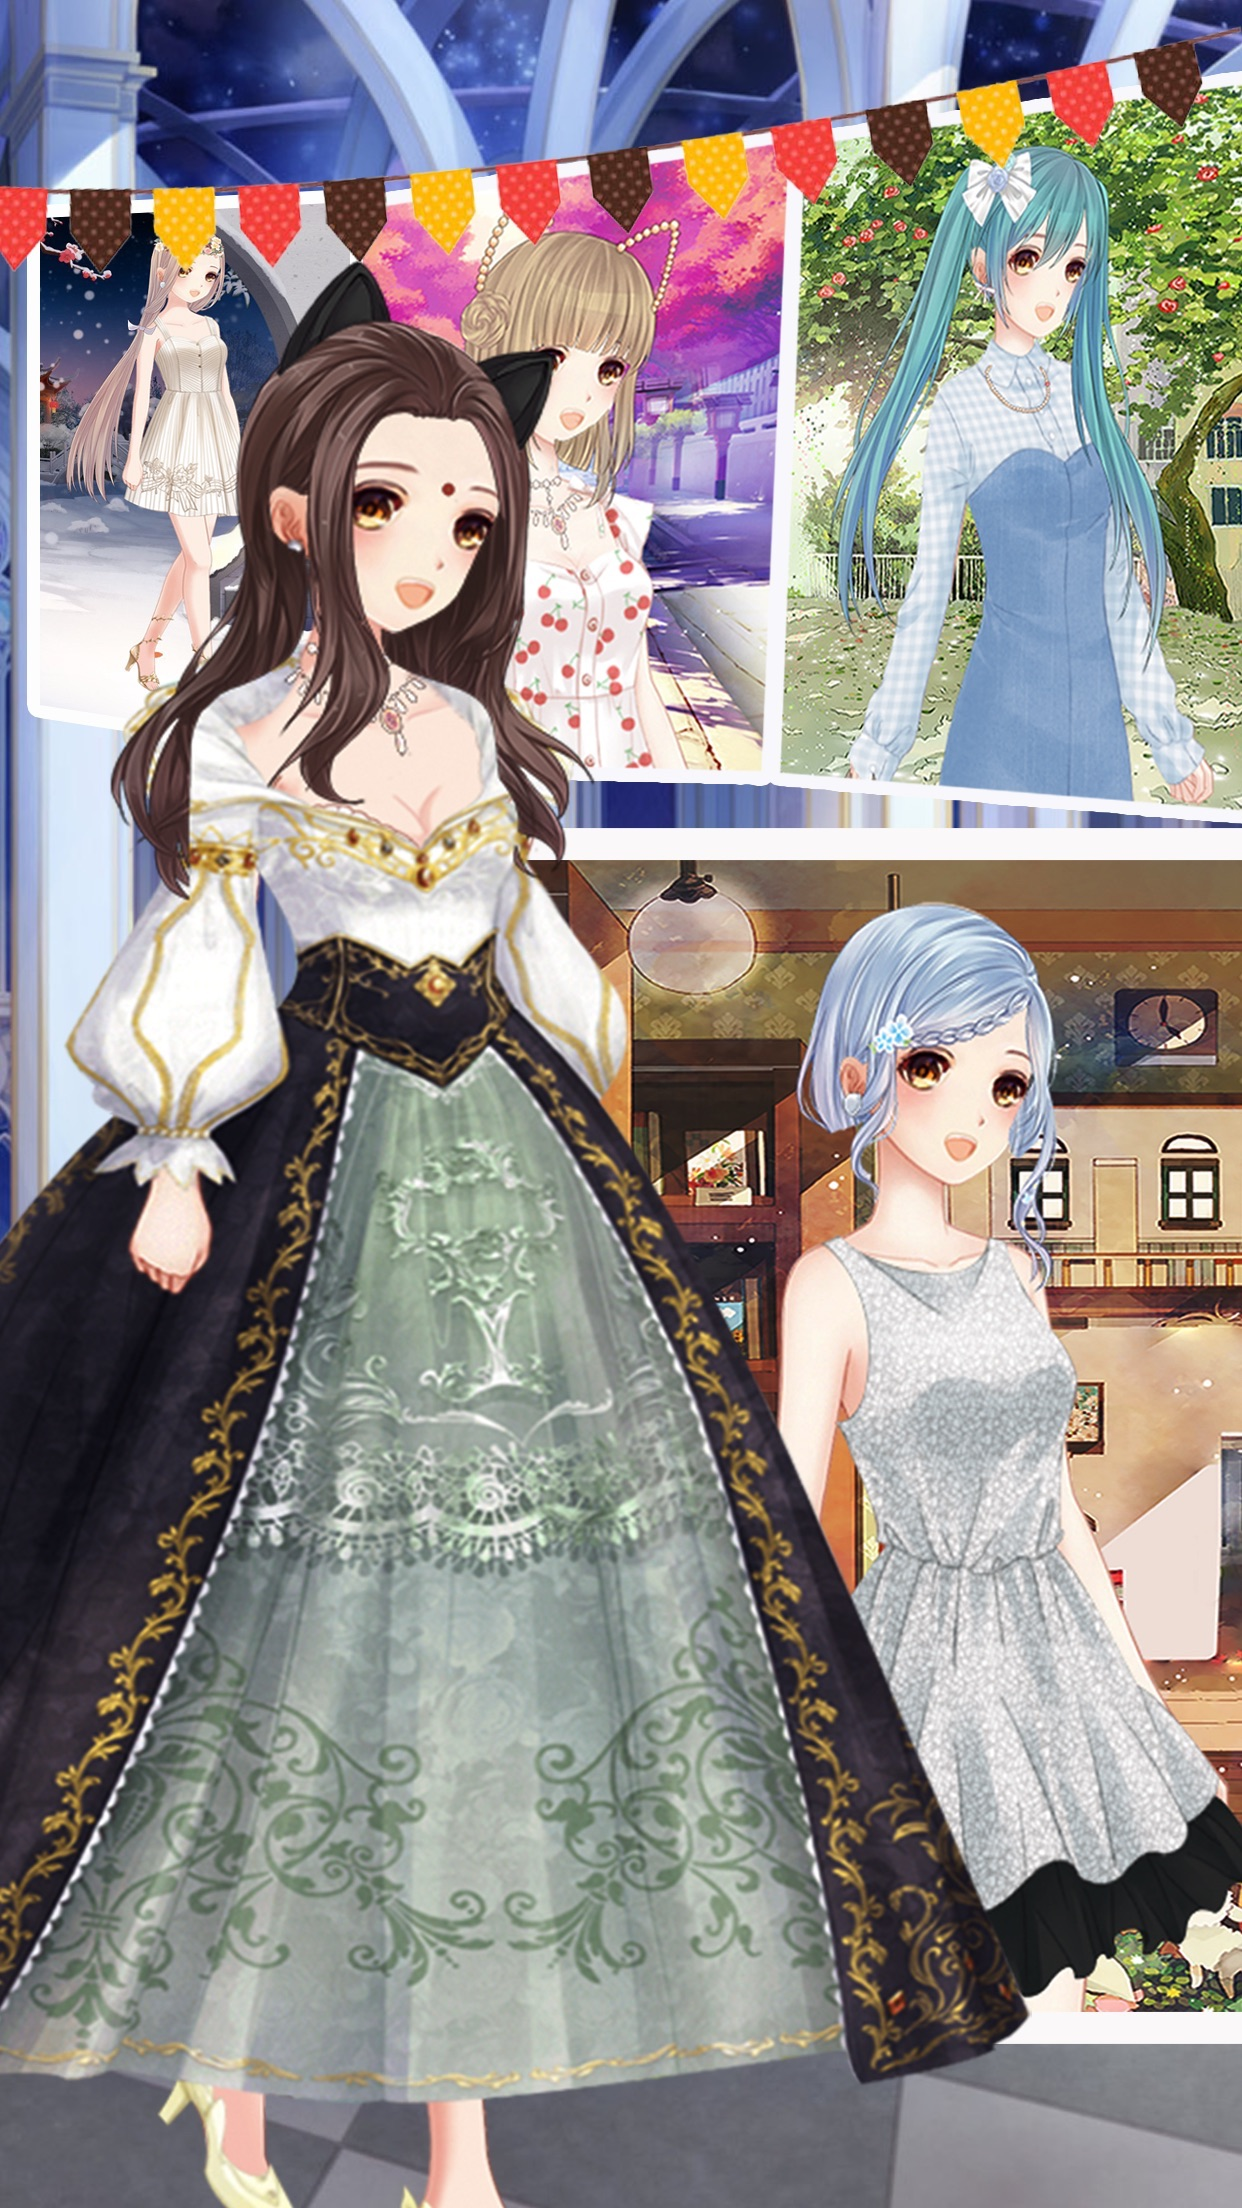 Fashionable girl dress up - Fun girl games by liu xian